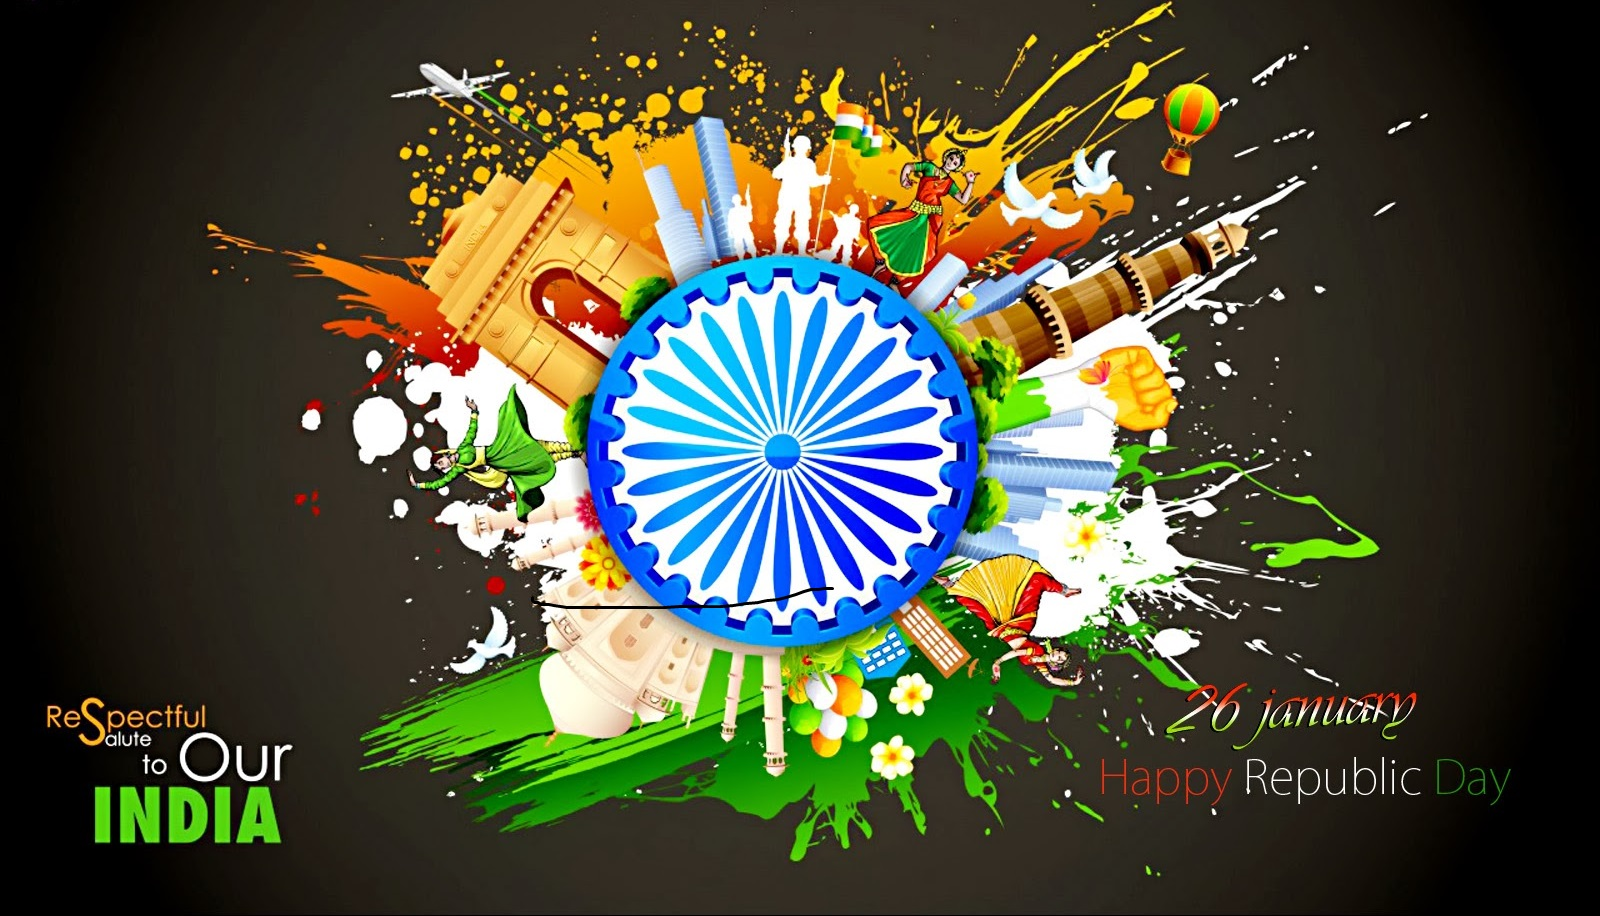 20 Most Wonderful Happy Republic Day 2019 Wishes Images Free